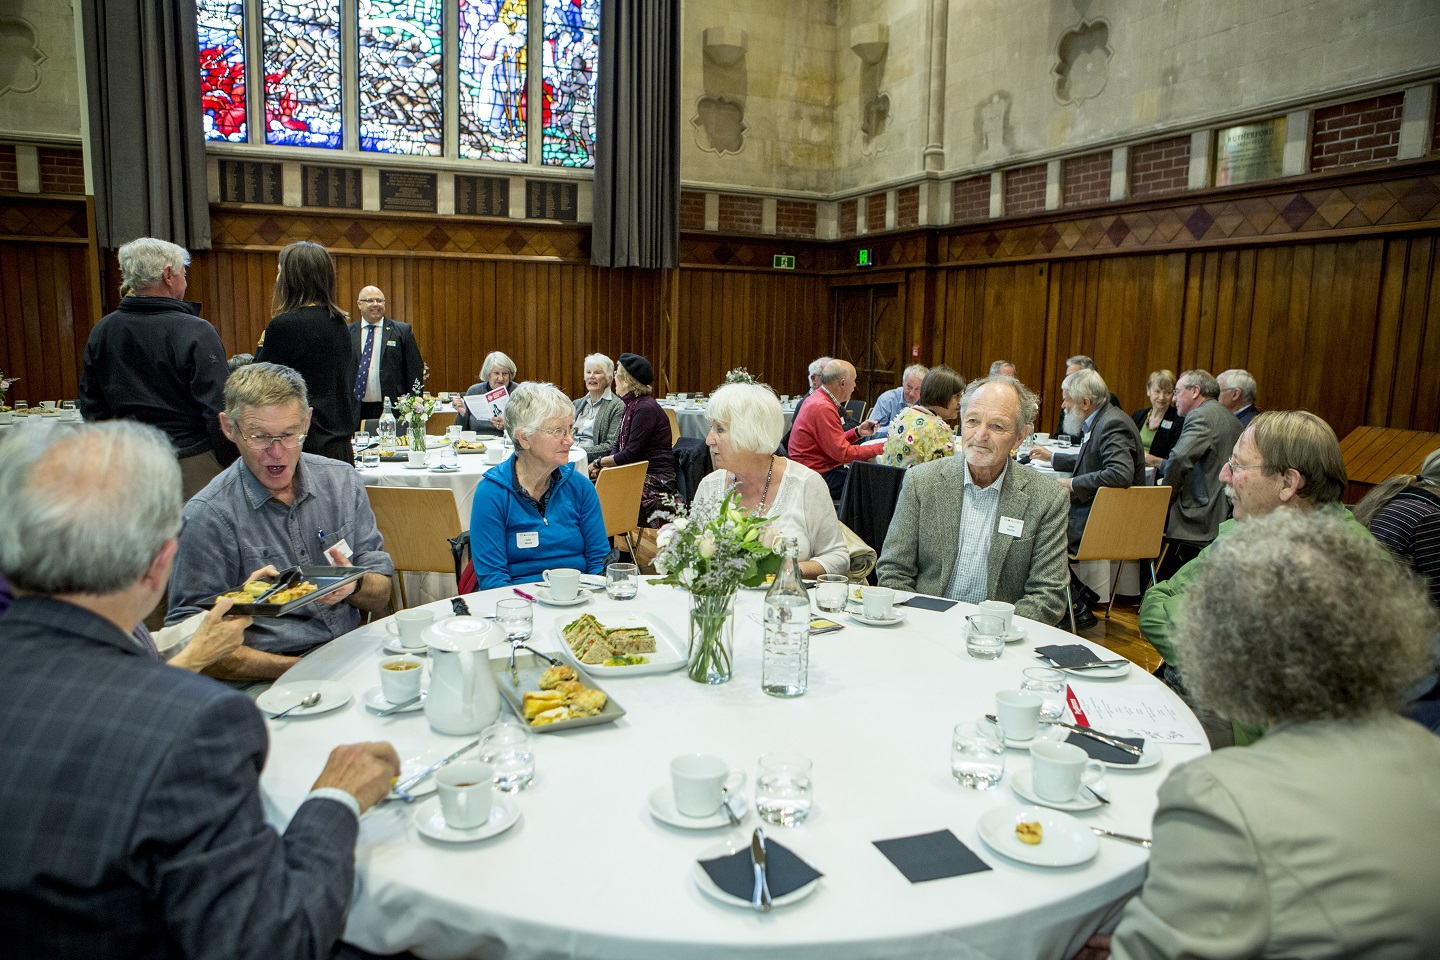 Alumni Golden Graduates event Wed PM, senior alumni meet for morning tea and visito the Old Chemistry Building Jo Dowling, Vice Chancellor Rod Carr and UCSA president James Addington address the Alumni, 5.4.17 Client, Jo Dowling, Alumni.